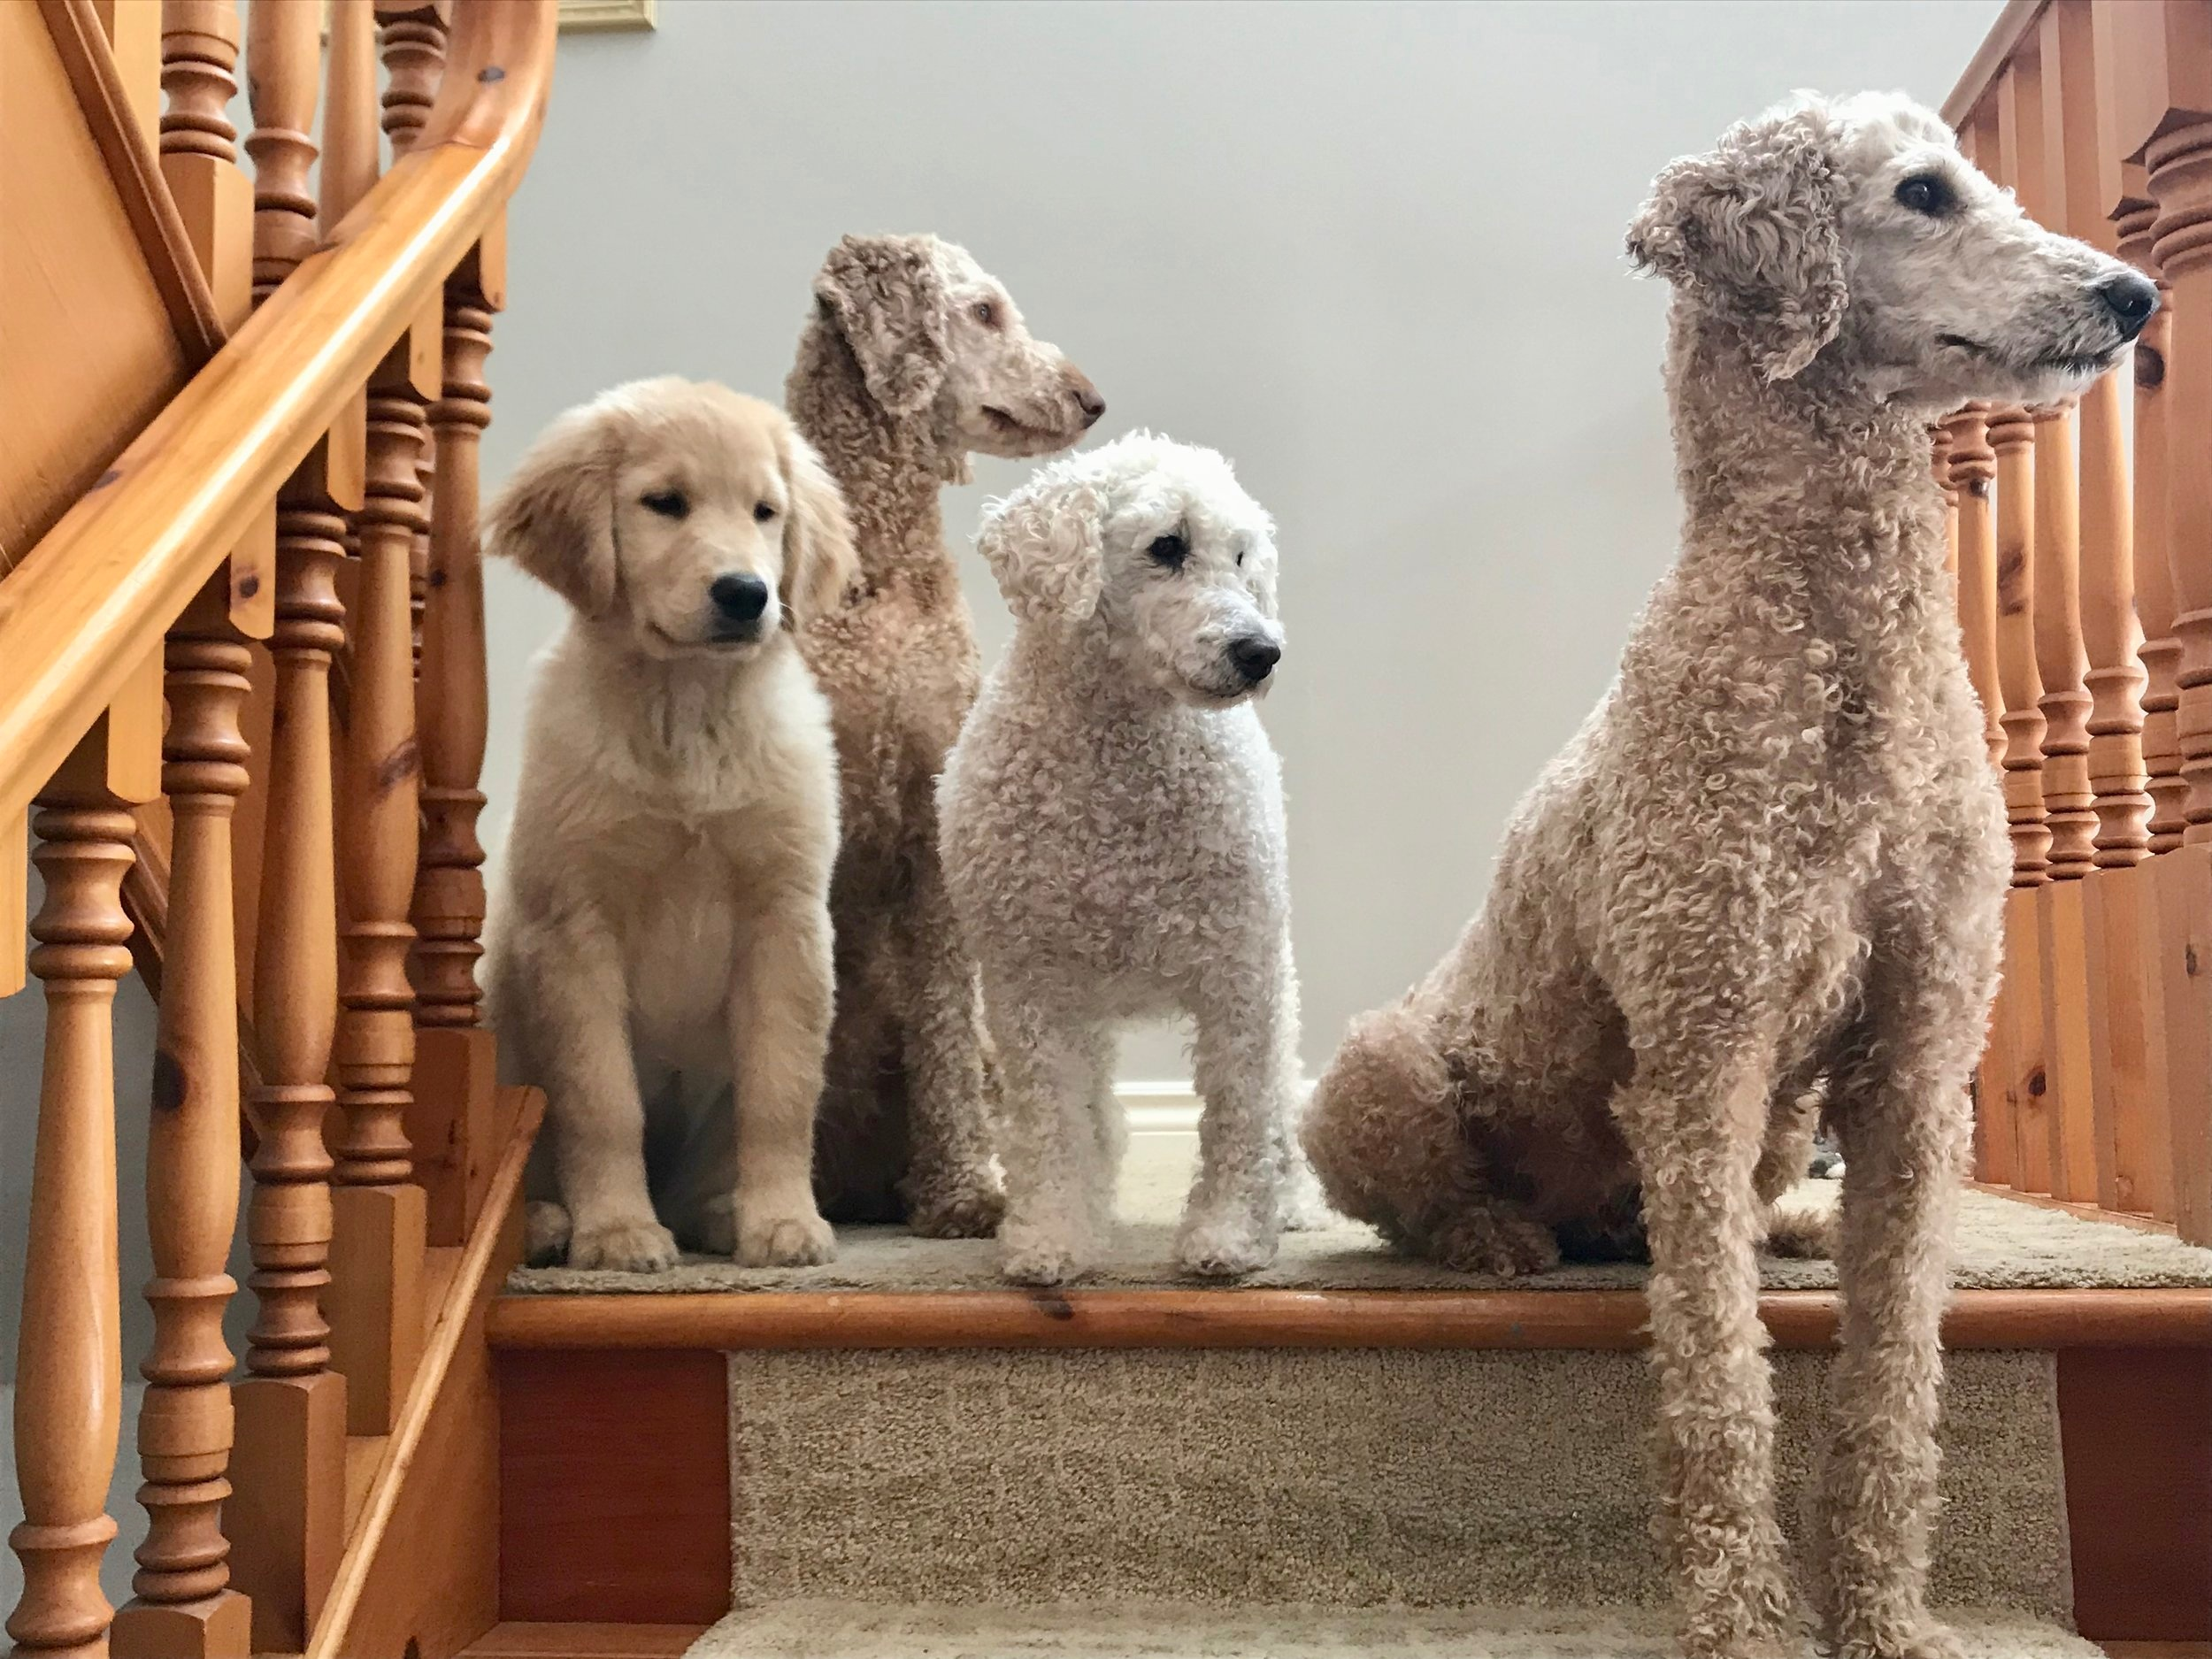 Ivy, Xila, Stewey the zen poodle & Cider - past & present Dog Guides in Training